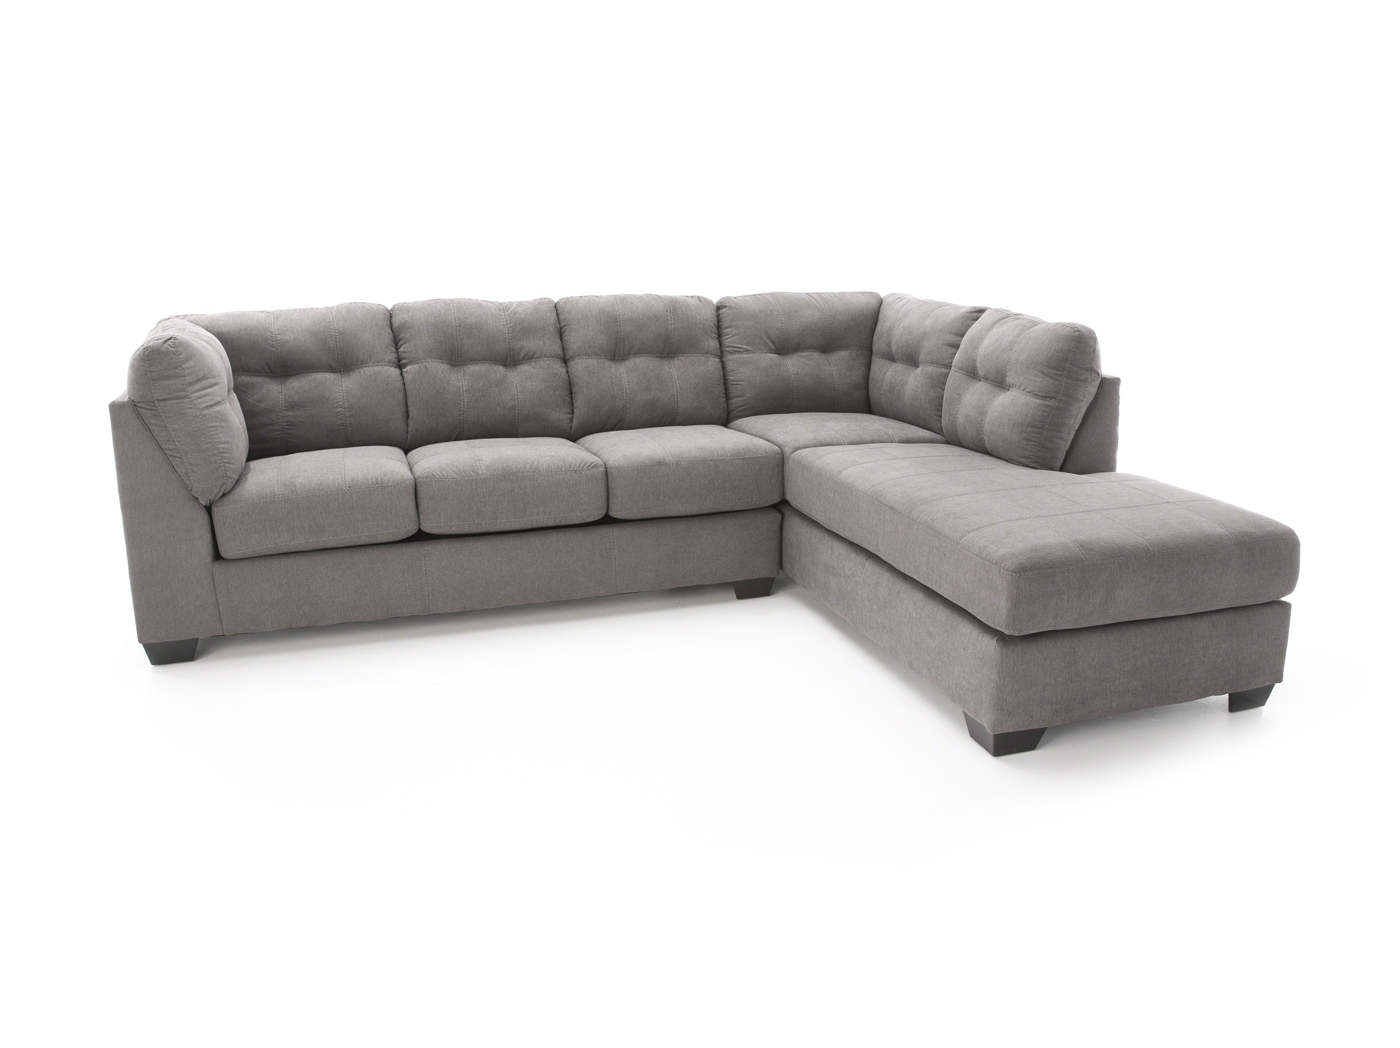 Living Room – Sectionals | Steinhafels With Meyer 3 Piece Sectionals With Laf Chaise (Image 11 of 25)